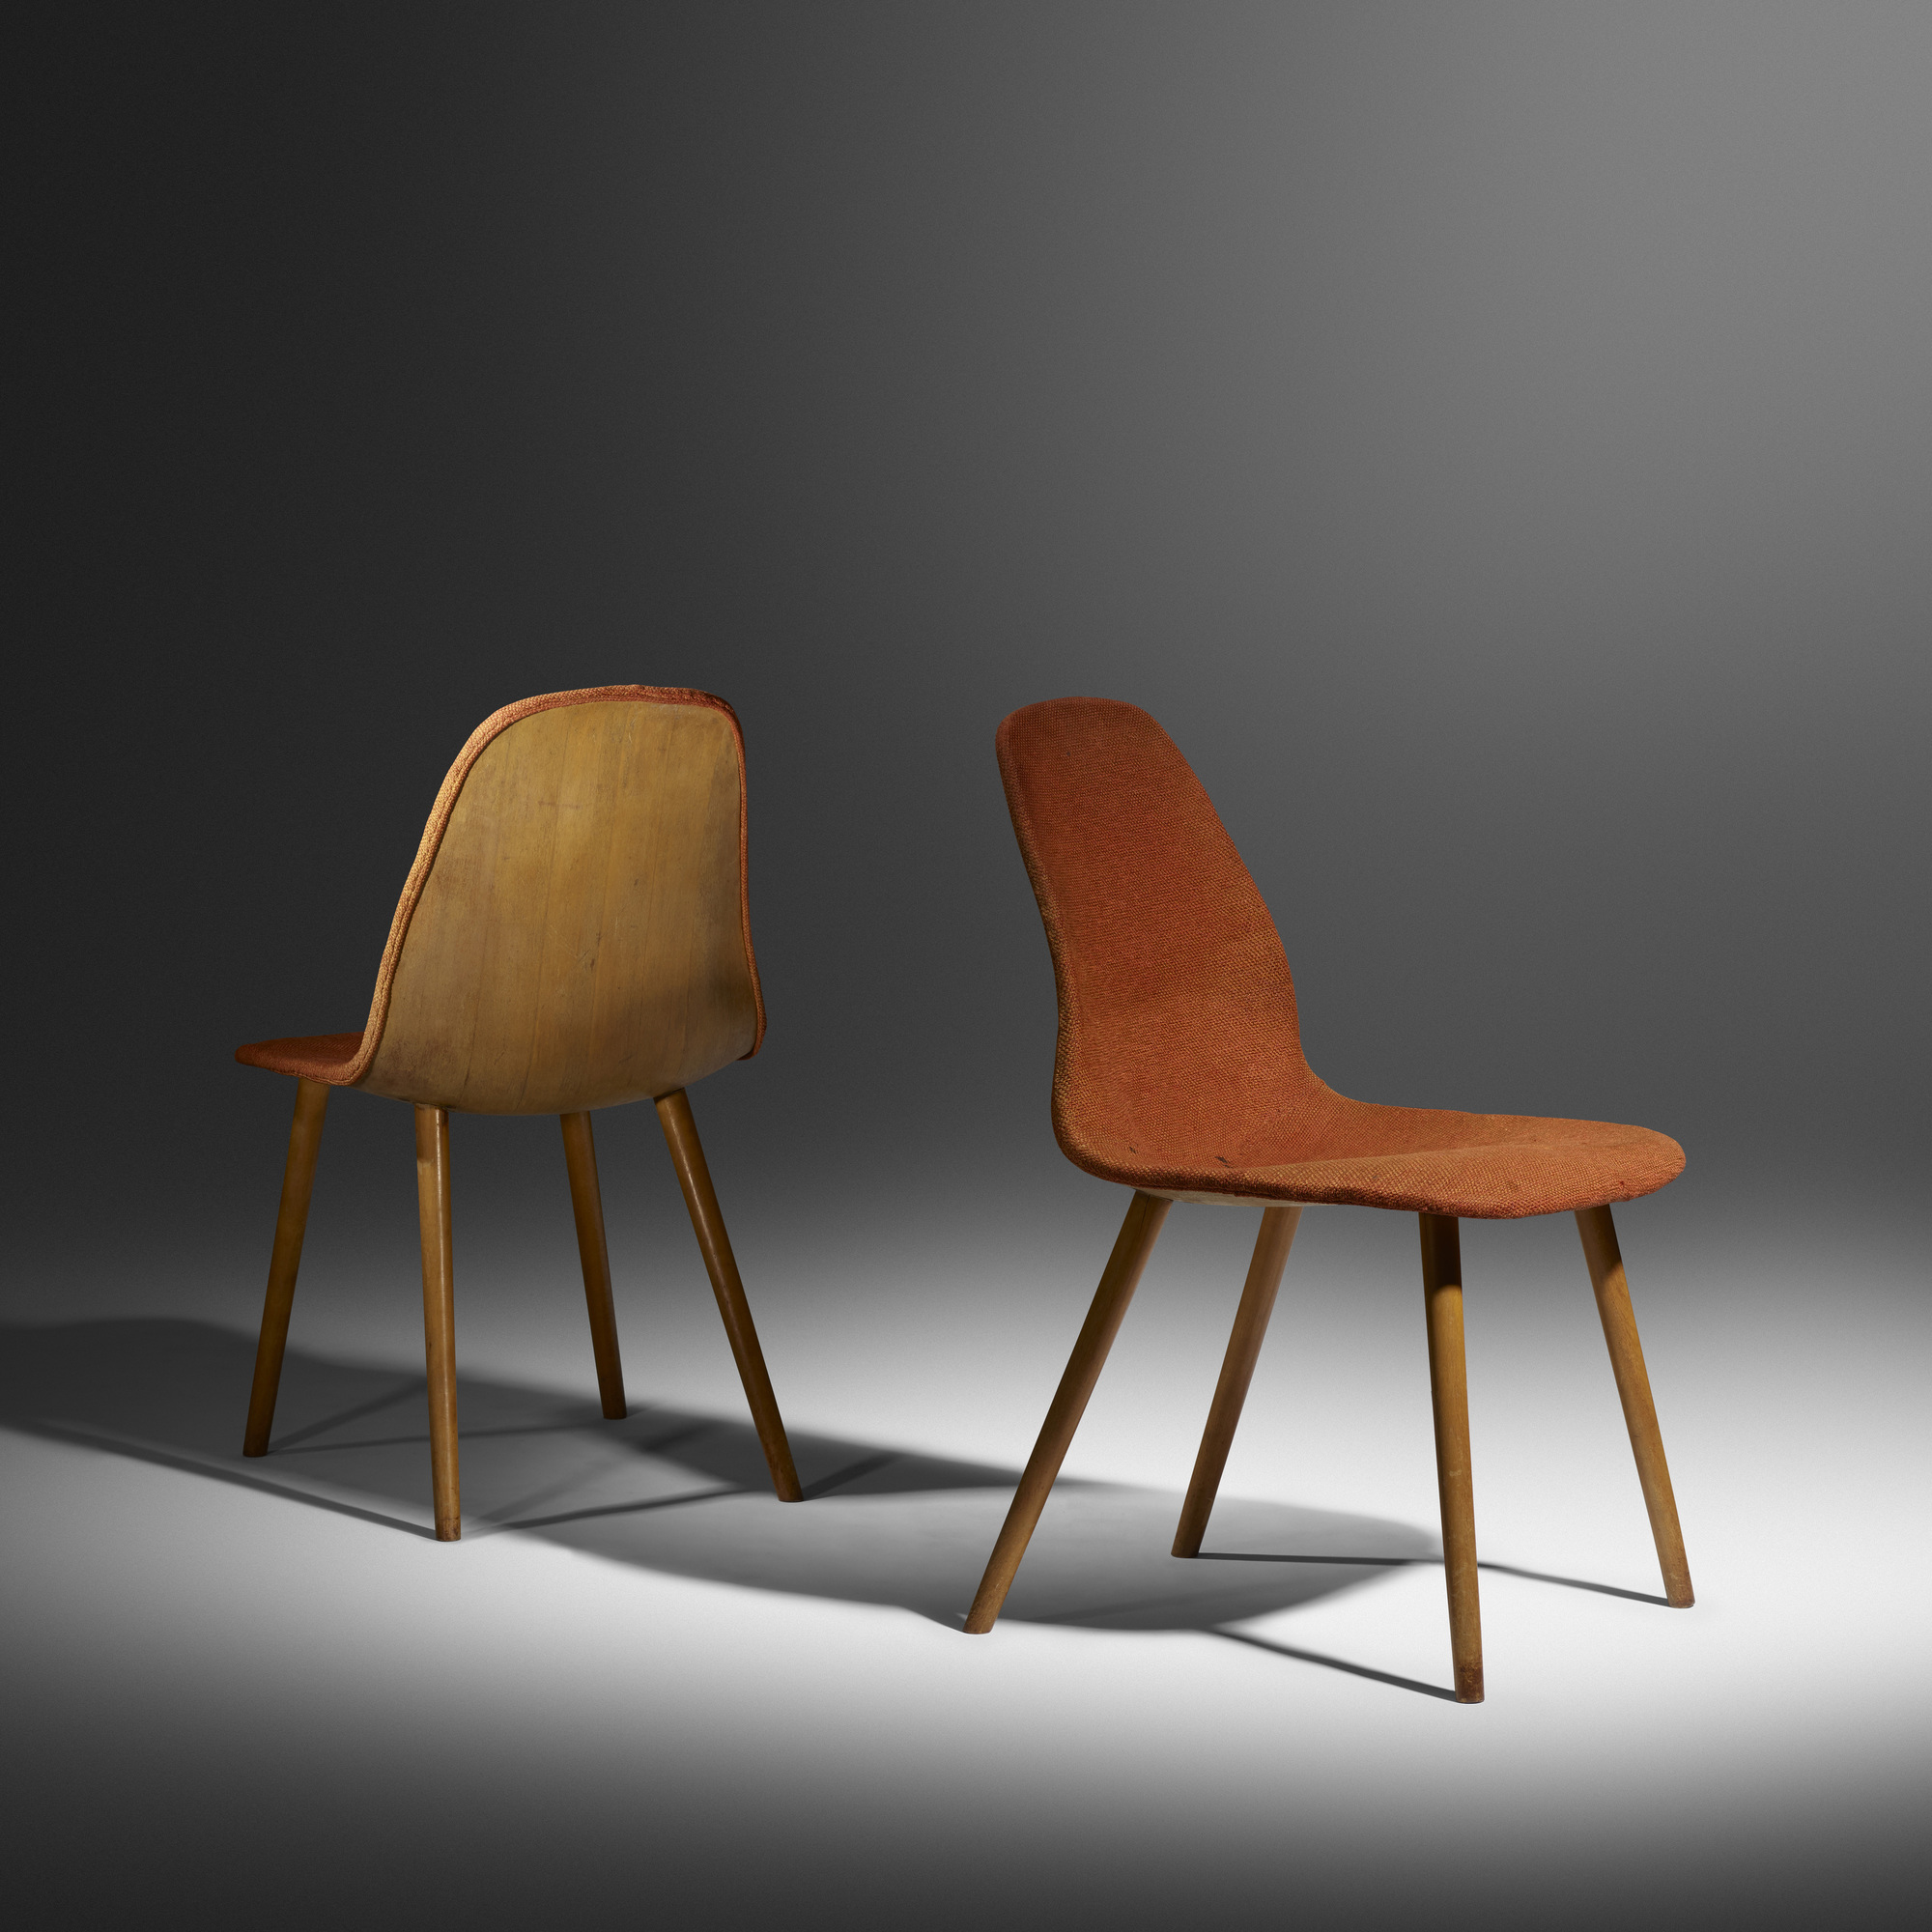 chair design competition 2017 heated vibrating cushions 15 charles eames and eero saarinen rare pair of chairs